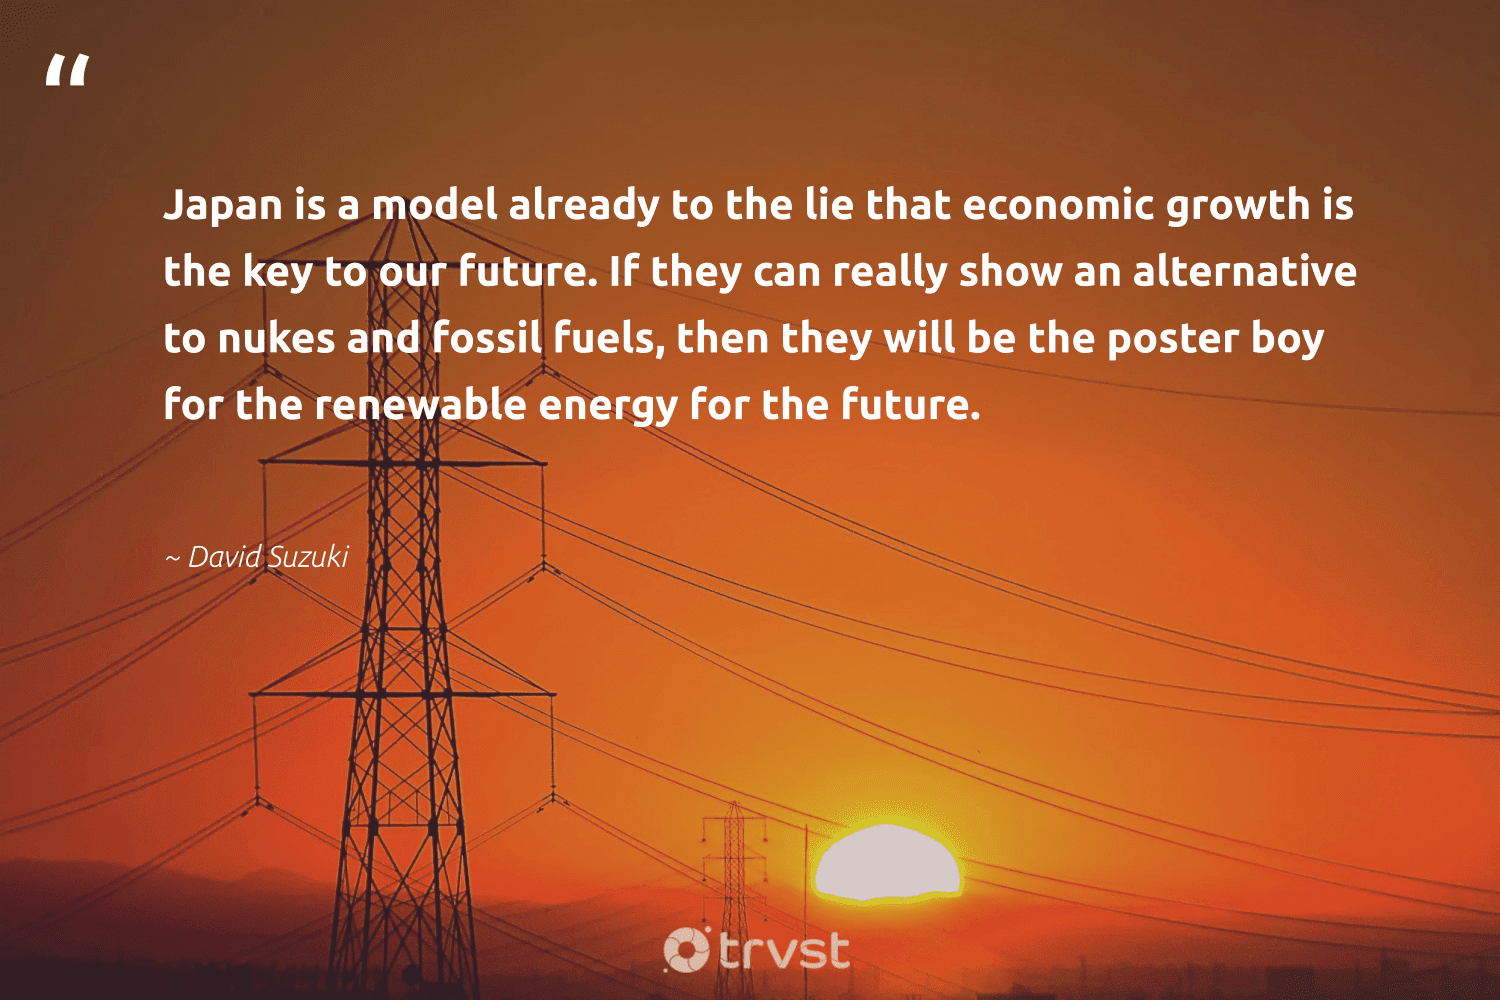 """""""Japan is a model already to the lie that economic growth is the key to our future. If they can really show an alternative to nukes and fossil fuels, then they will be the poster boy for the renewable energy for the future.""""  - David Suzuki #trvst #quotes #renewableenergy #energy #renewable #fossilfuels #fossil #affordable #switchfuelenergy #gogreen #greenlife #dosomething"""